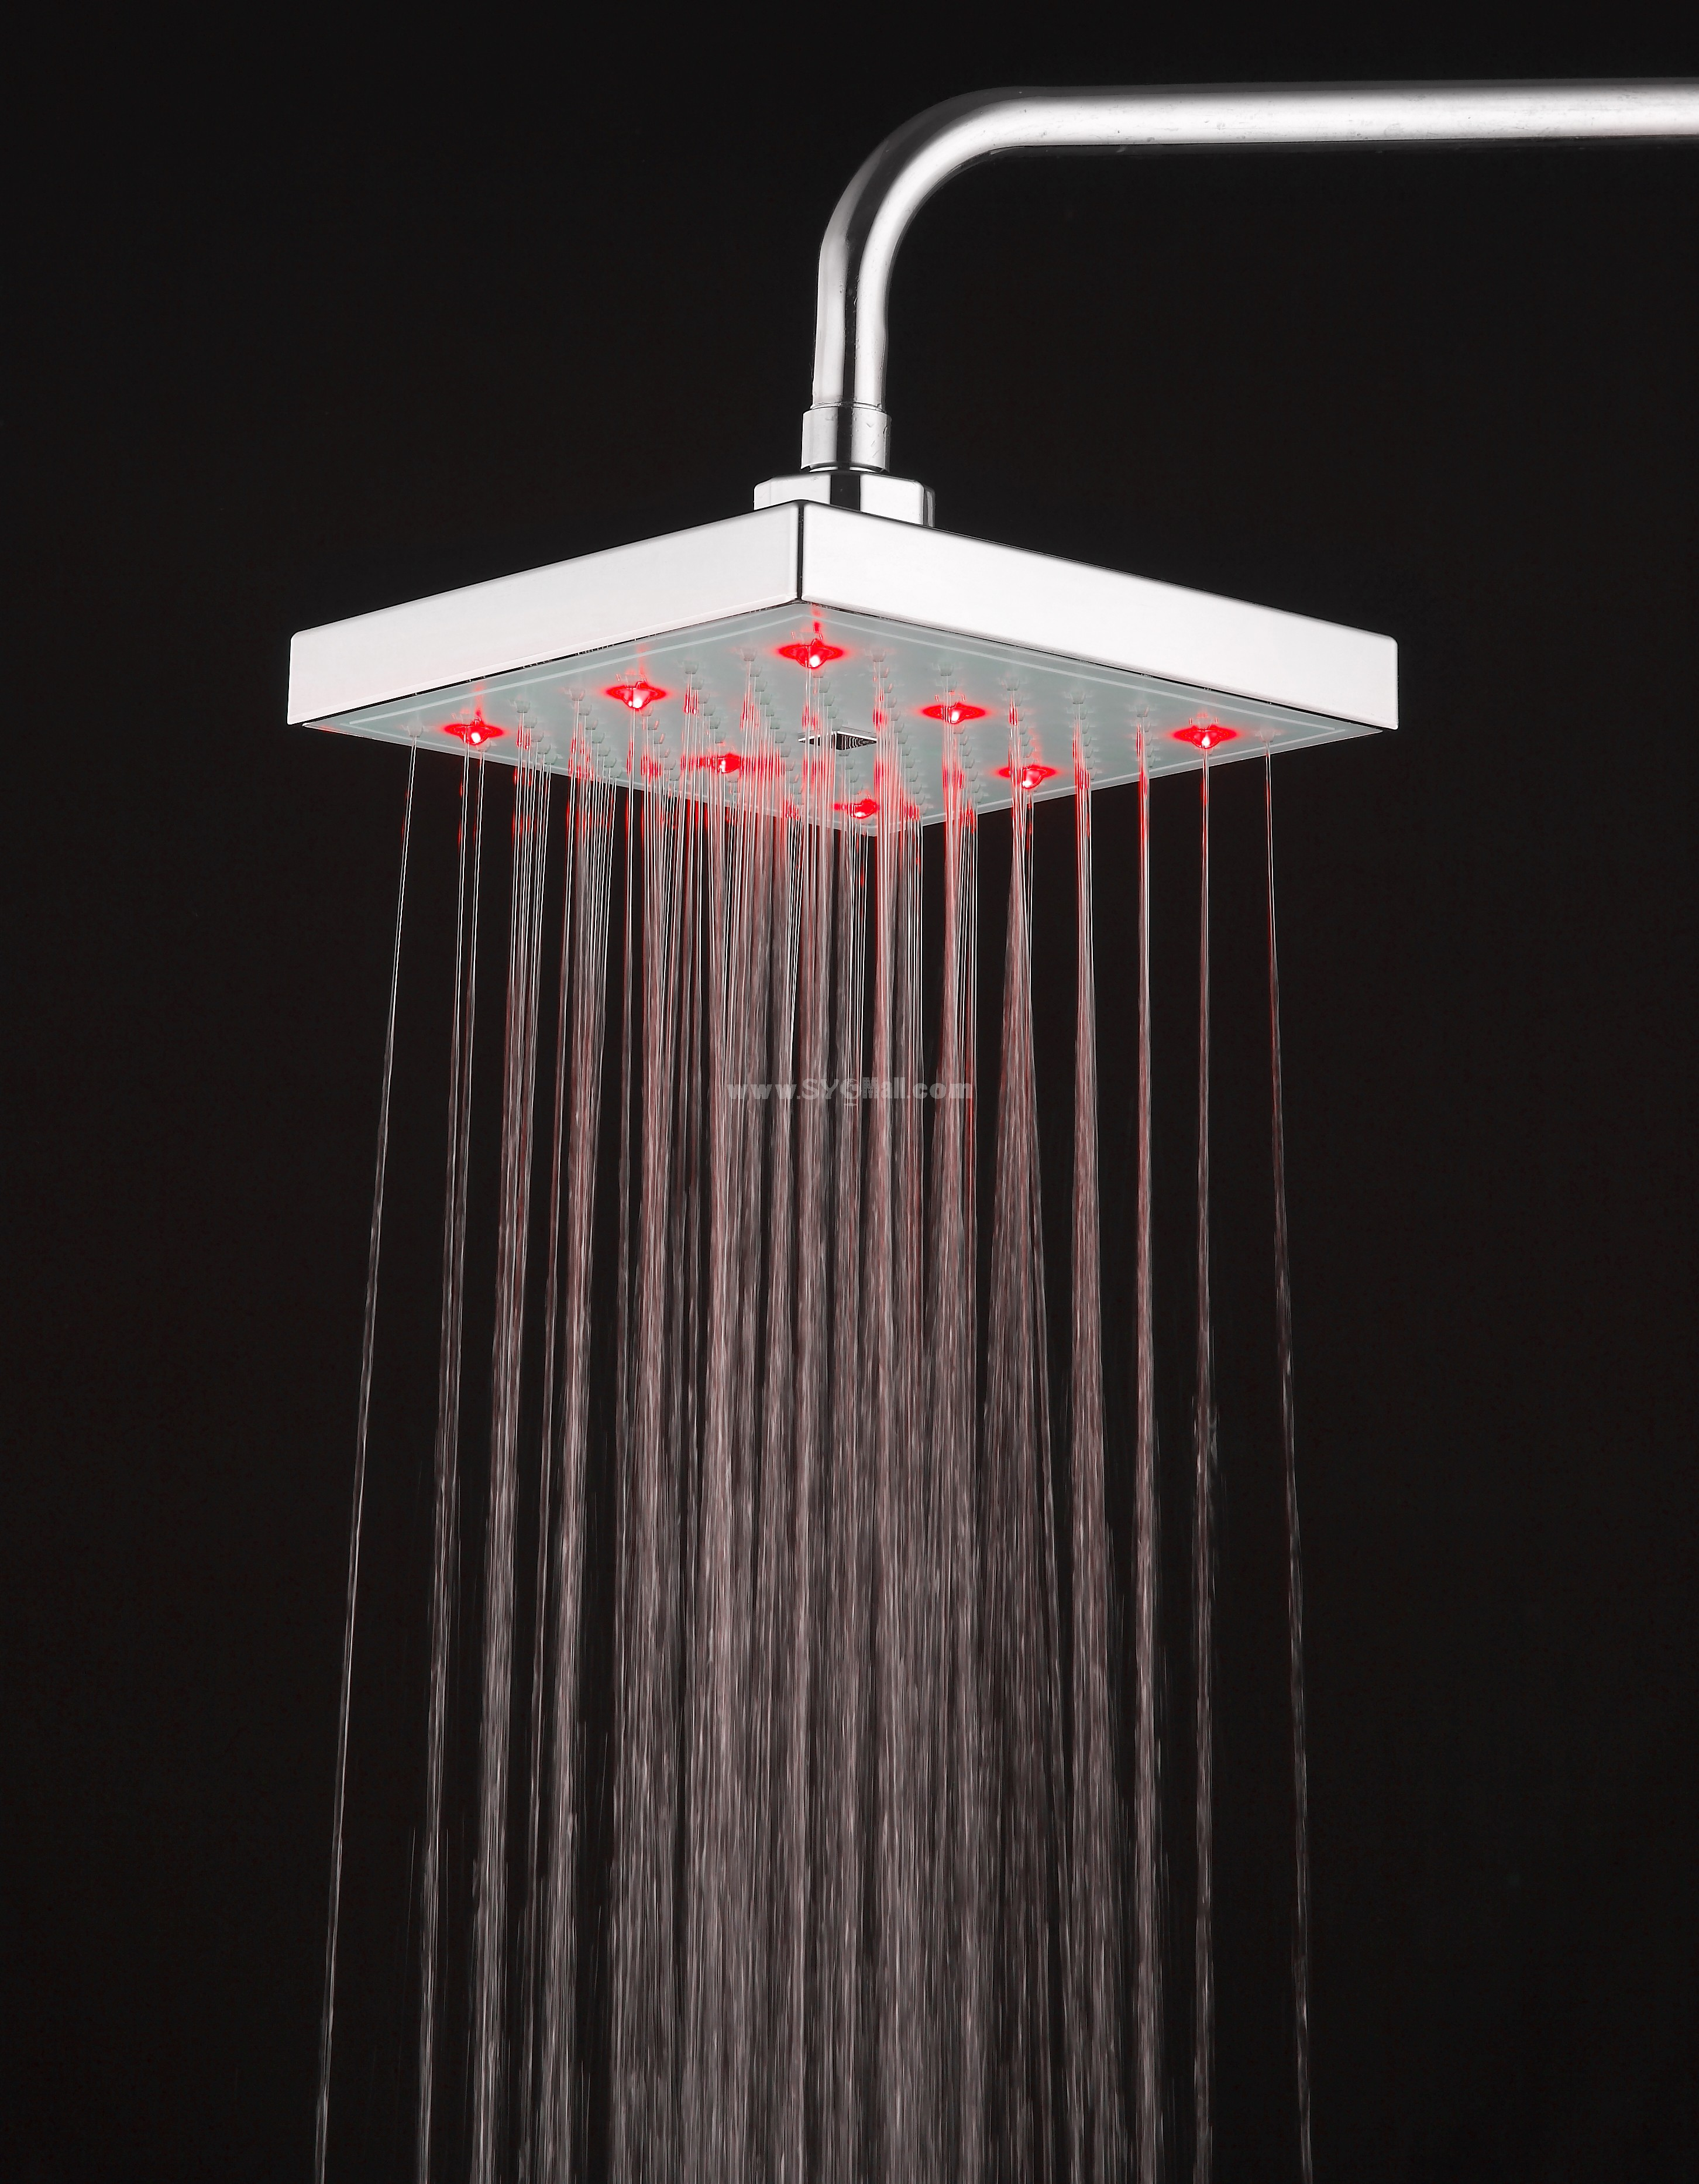 Romantic Bright Color LED Lights Top Spray Shower Bathroom Showerhead HY-3001W (Temperature Control Changing Color)